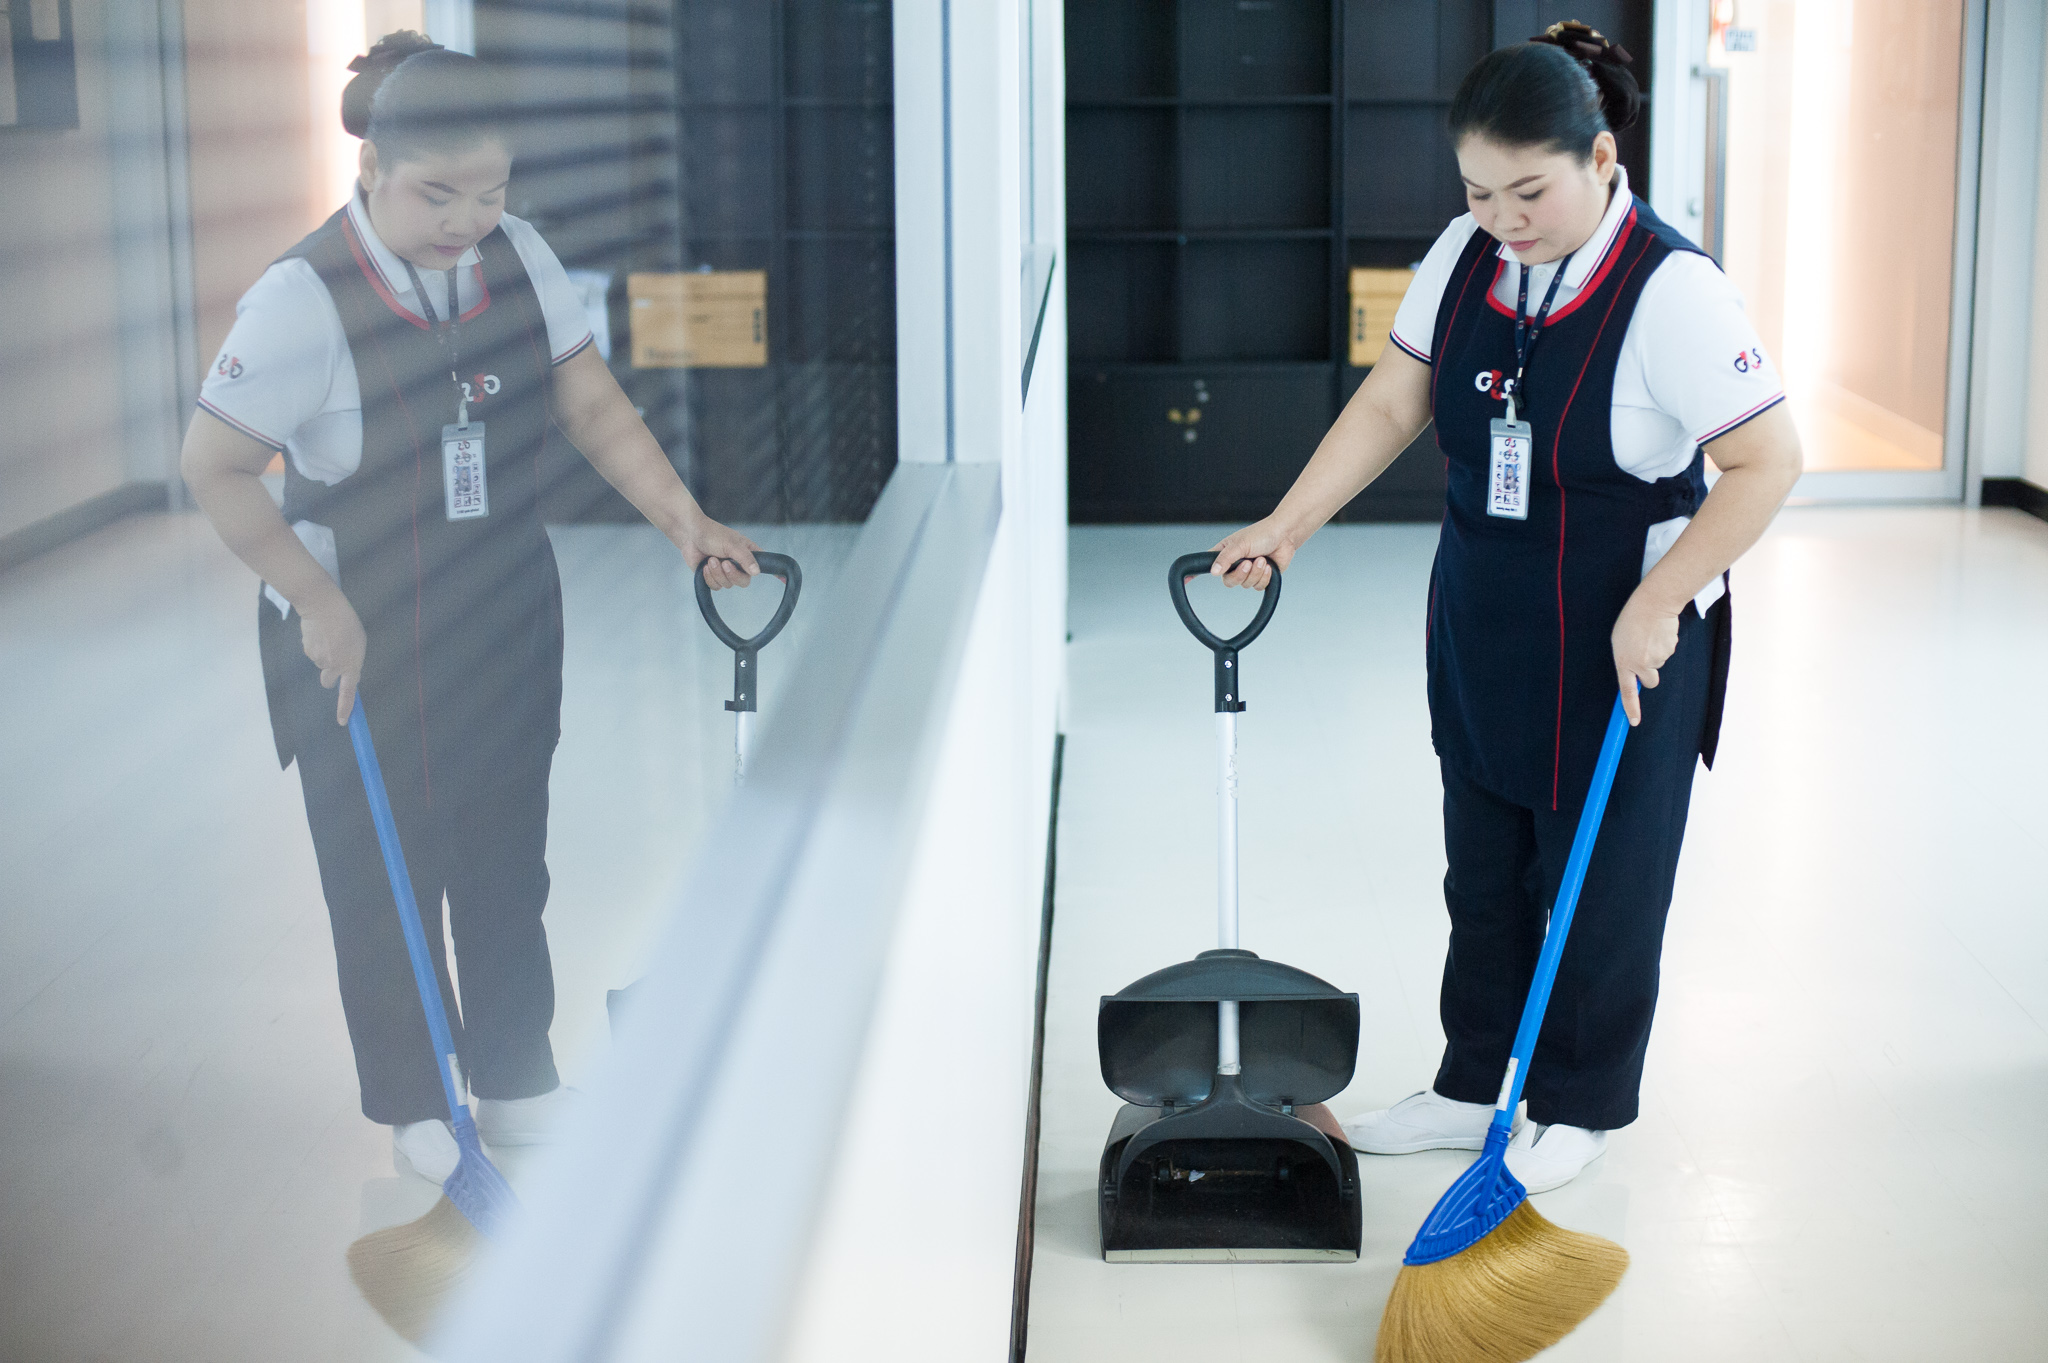 Maid is cleaning floor